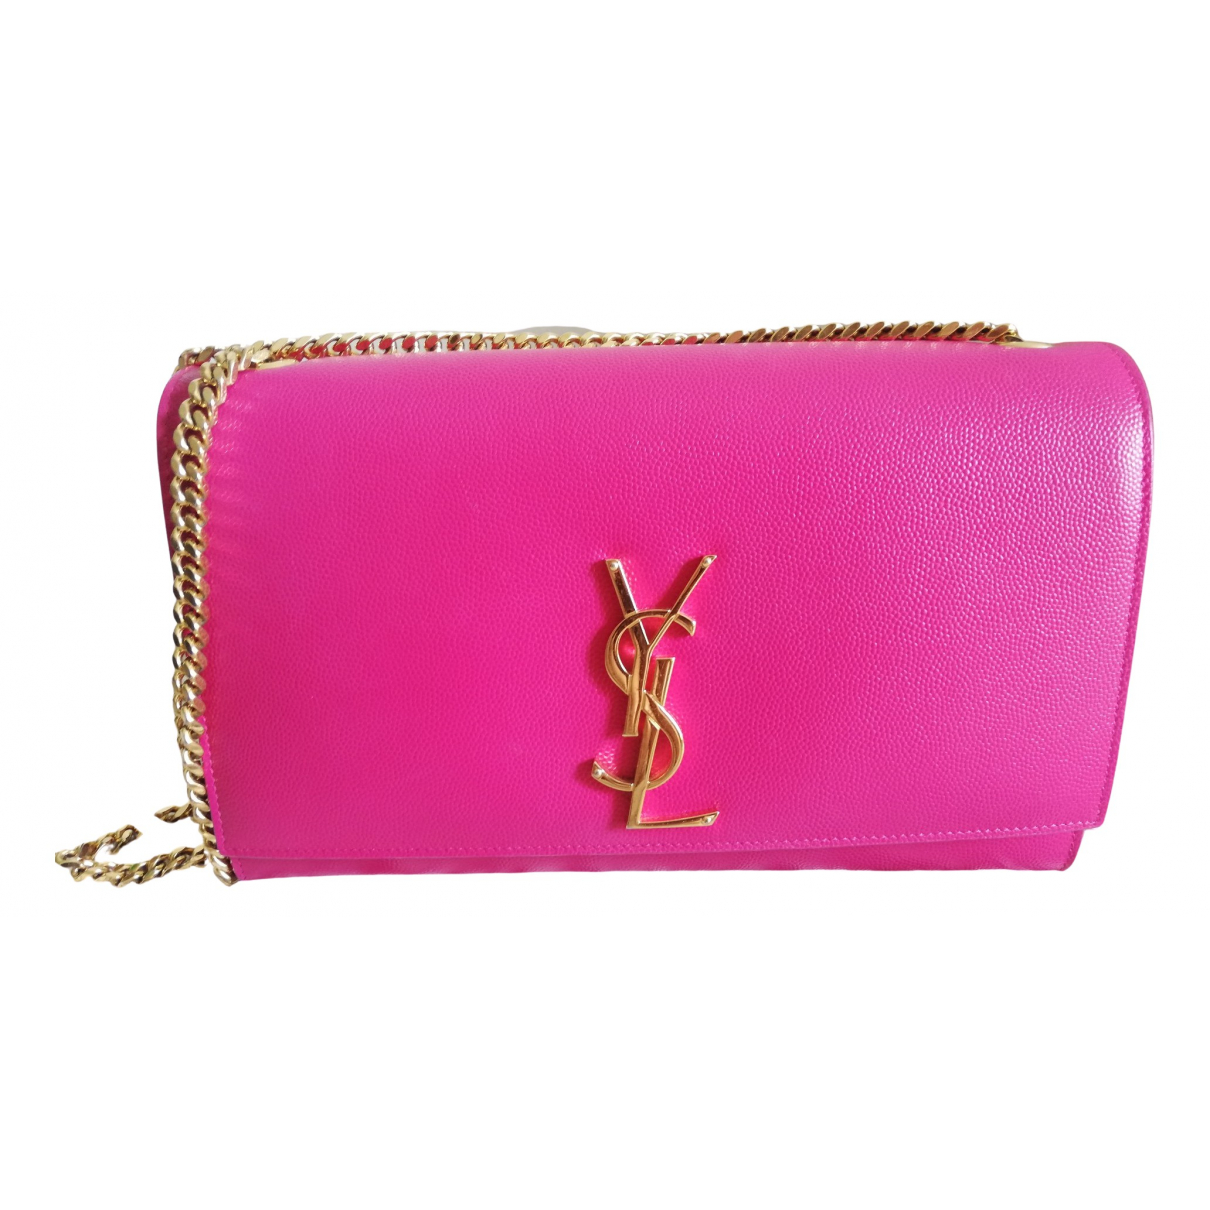 Saint Laurent Kate monogramme Handtasche in  Rosa Leder